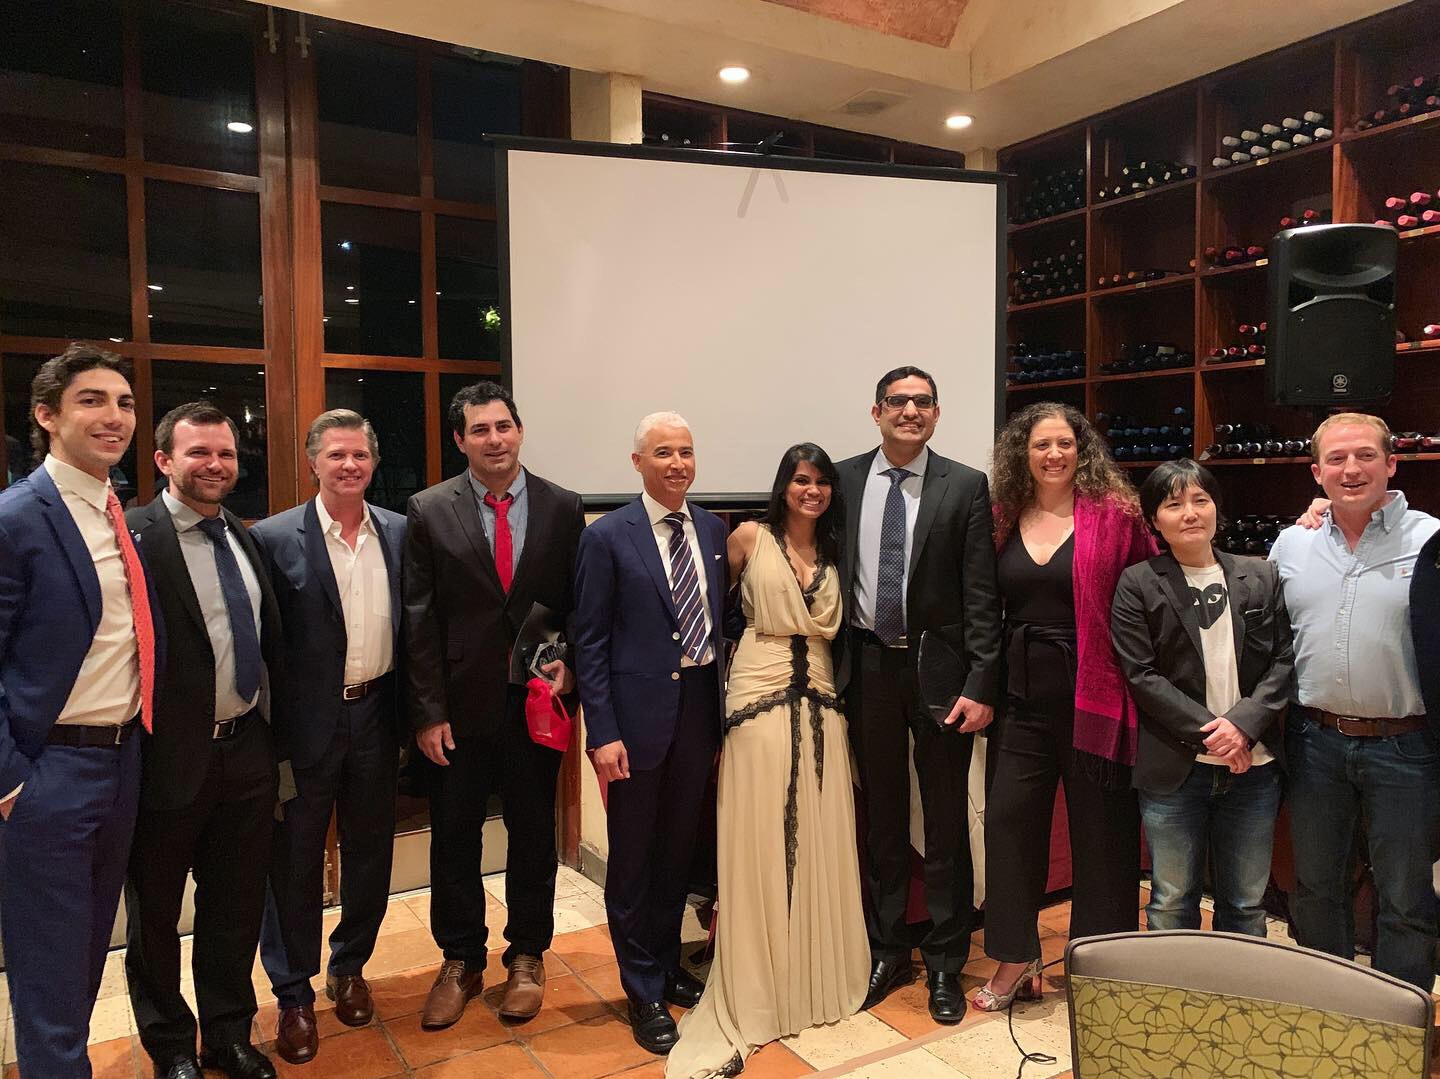 image from 2019 Vascular Surgery Residency and Fellowship Graduation